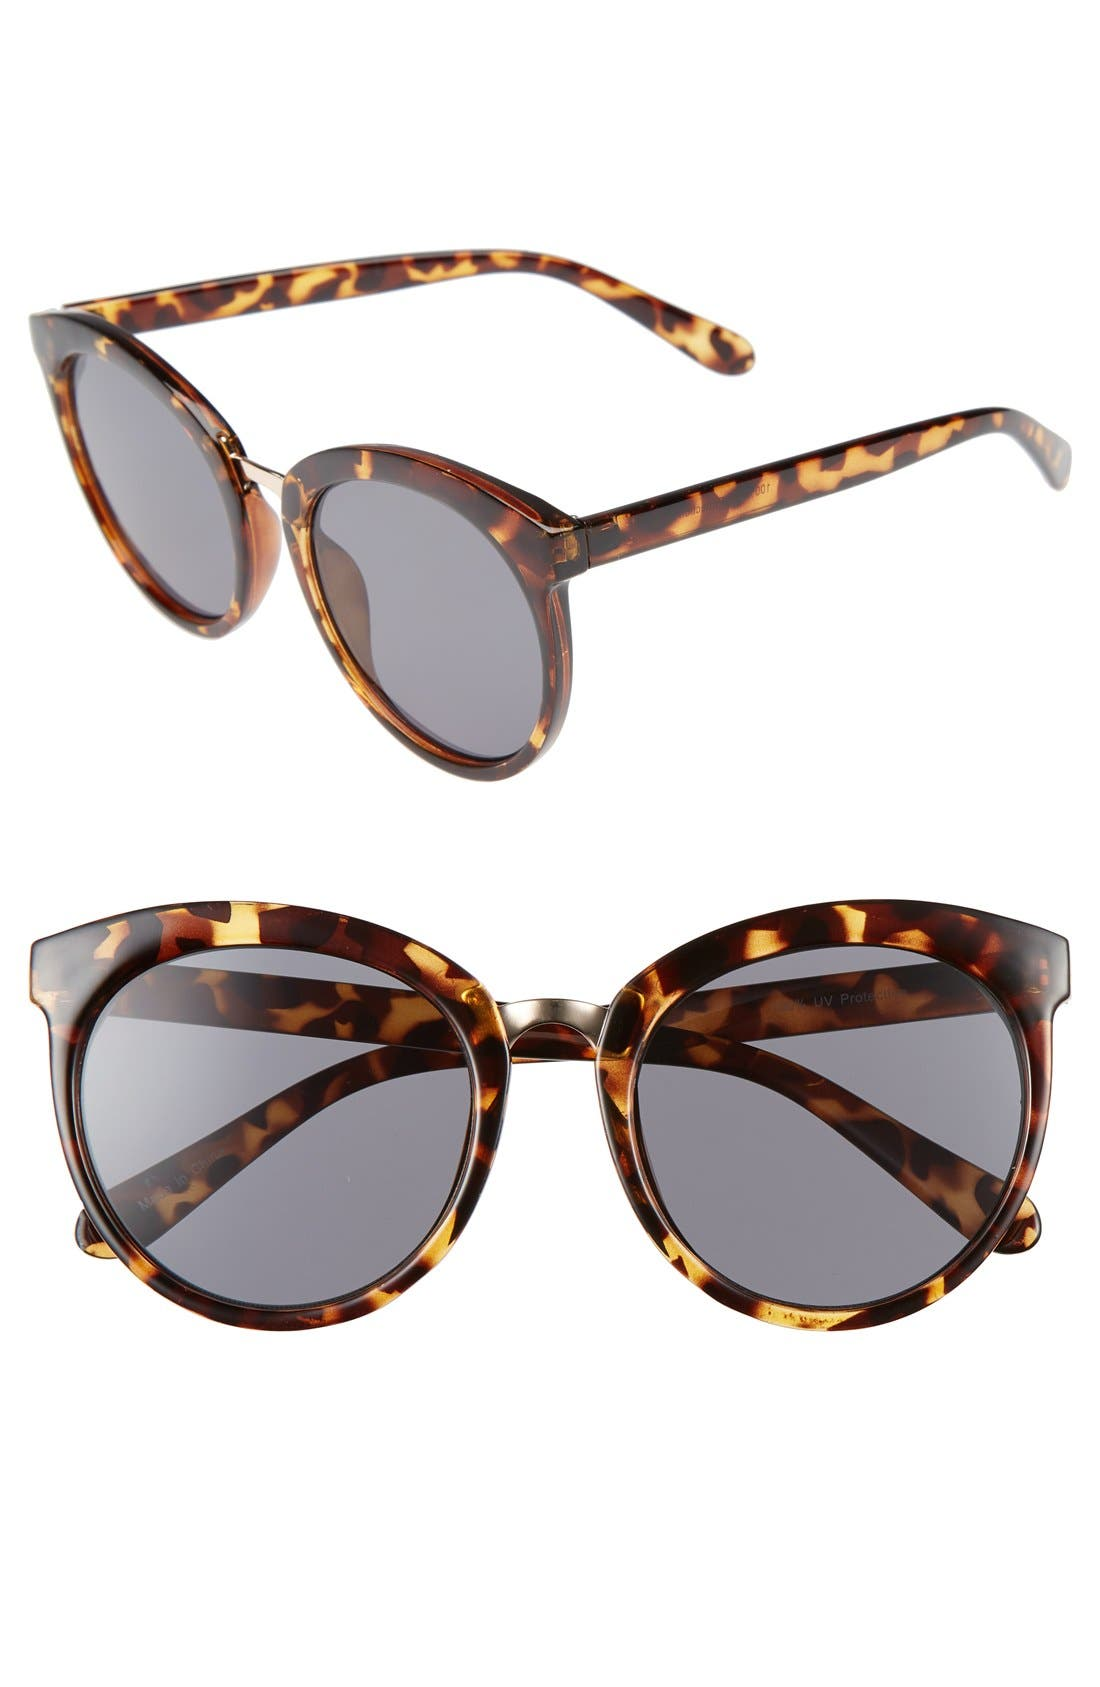 Alternate Image 1 Selected - BP 'Lookout' 52mm Round Sunglasses